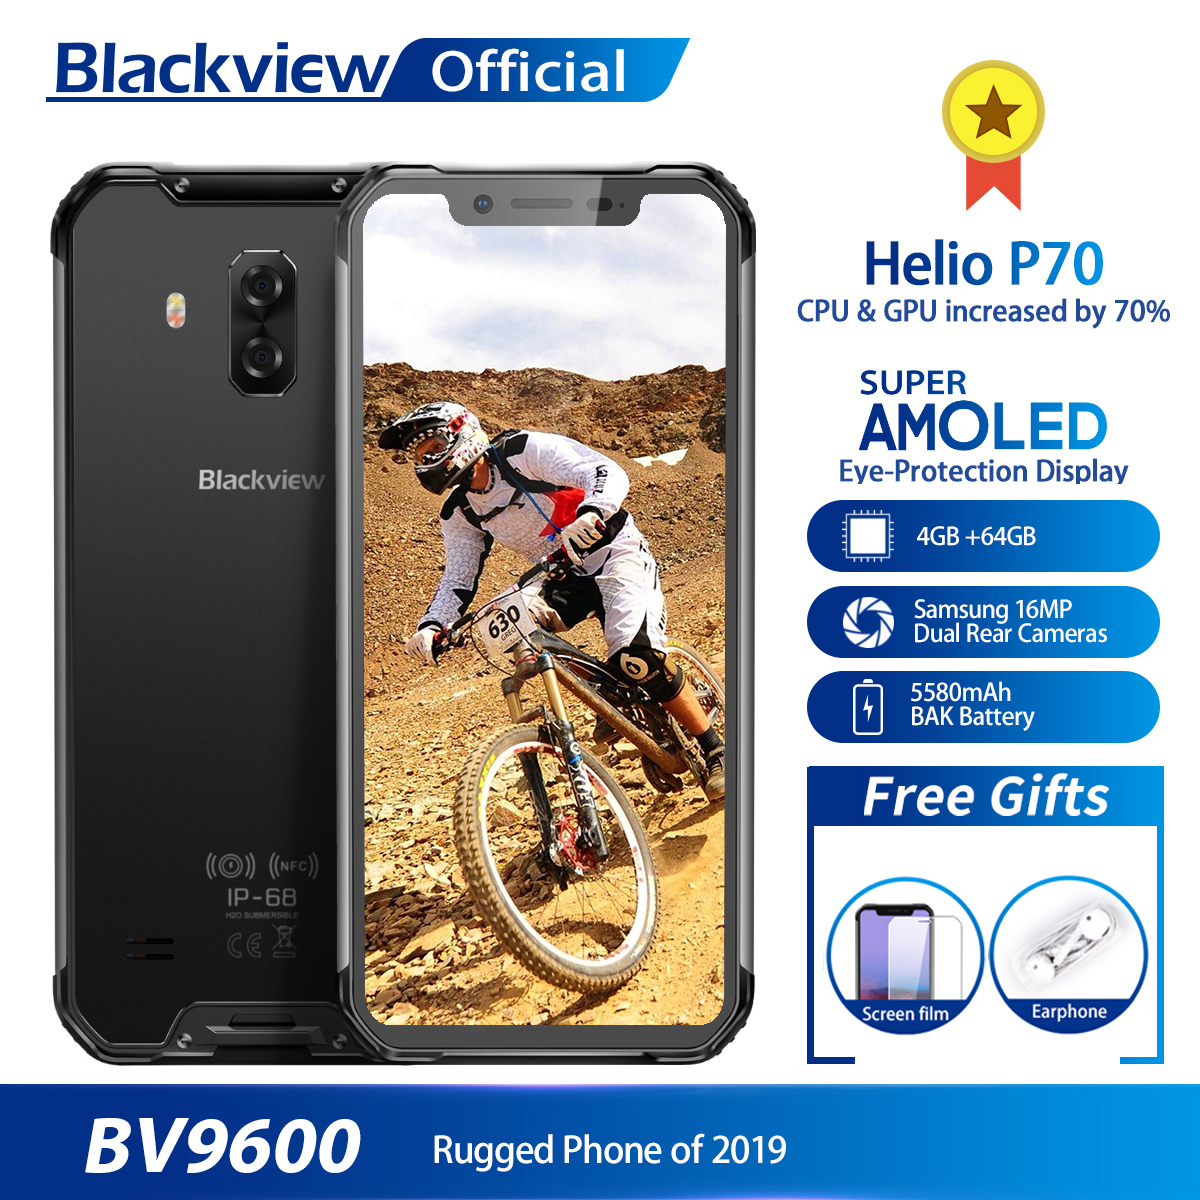 "Blackview 2019 New BV9600 Waterproof Mobile Phone Helio P70 Android 9.0 4GB+64GB 6.21"" 19:9 AMOLED 5580mAh Rugged Smartphone"